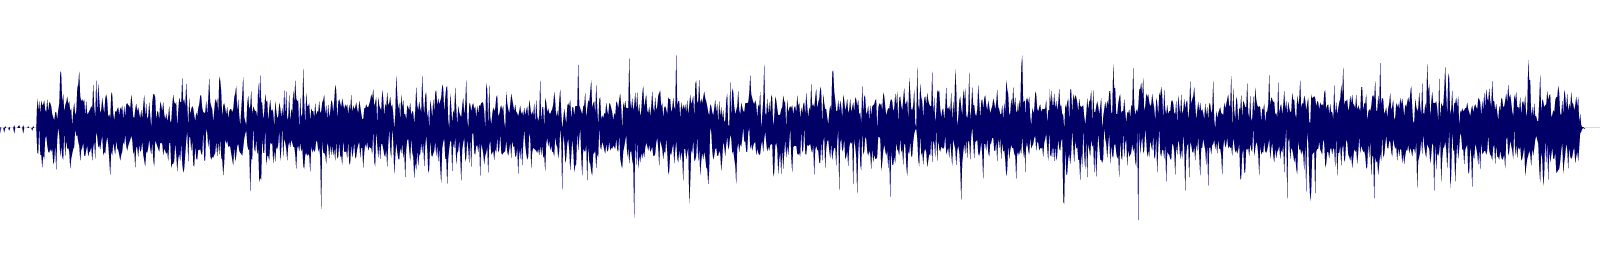 waveform of track #105067